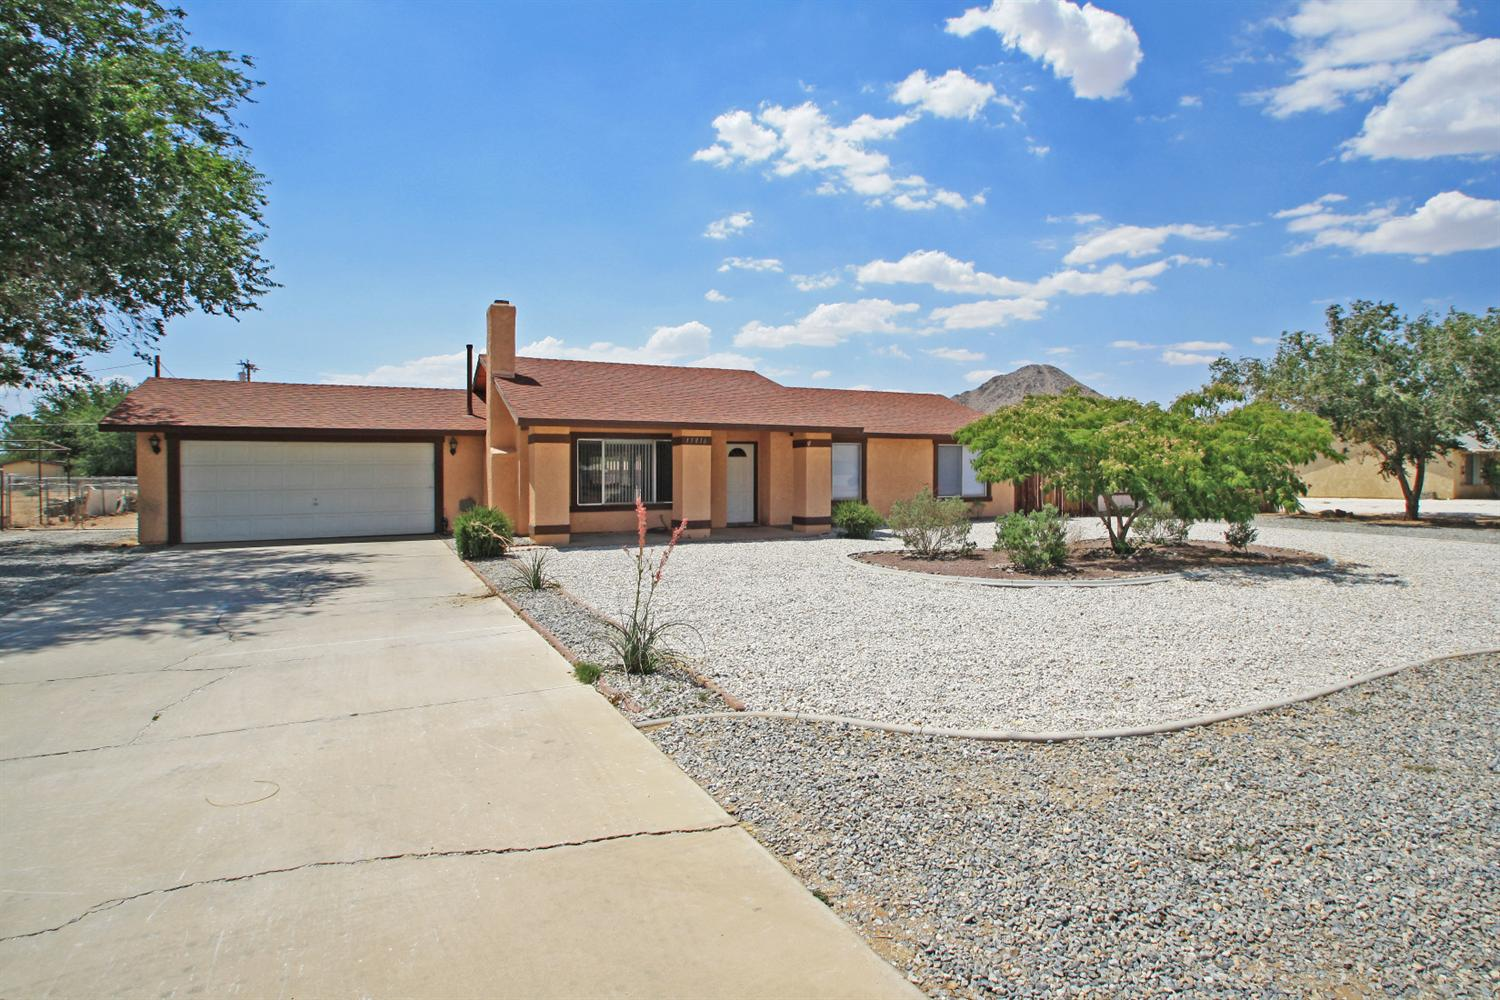 15816 Wichita Road, Apple Valley, CA 92307